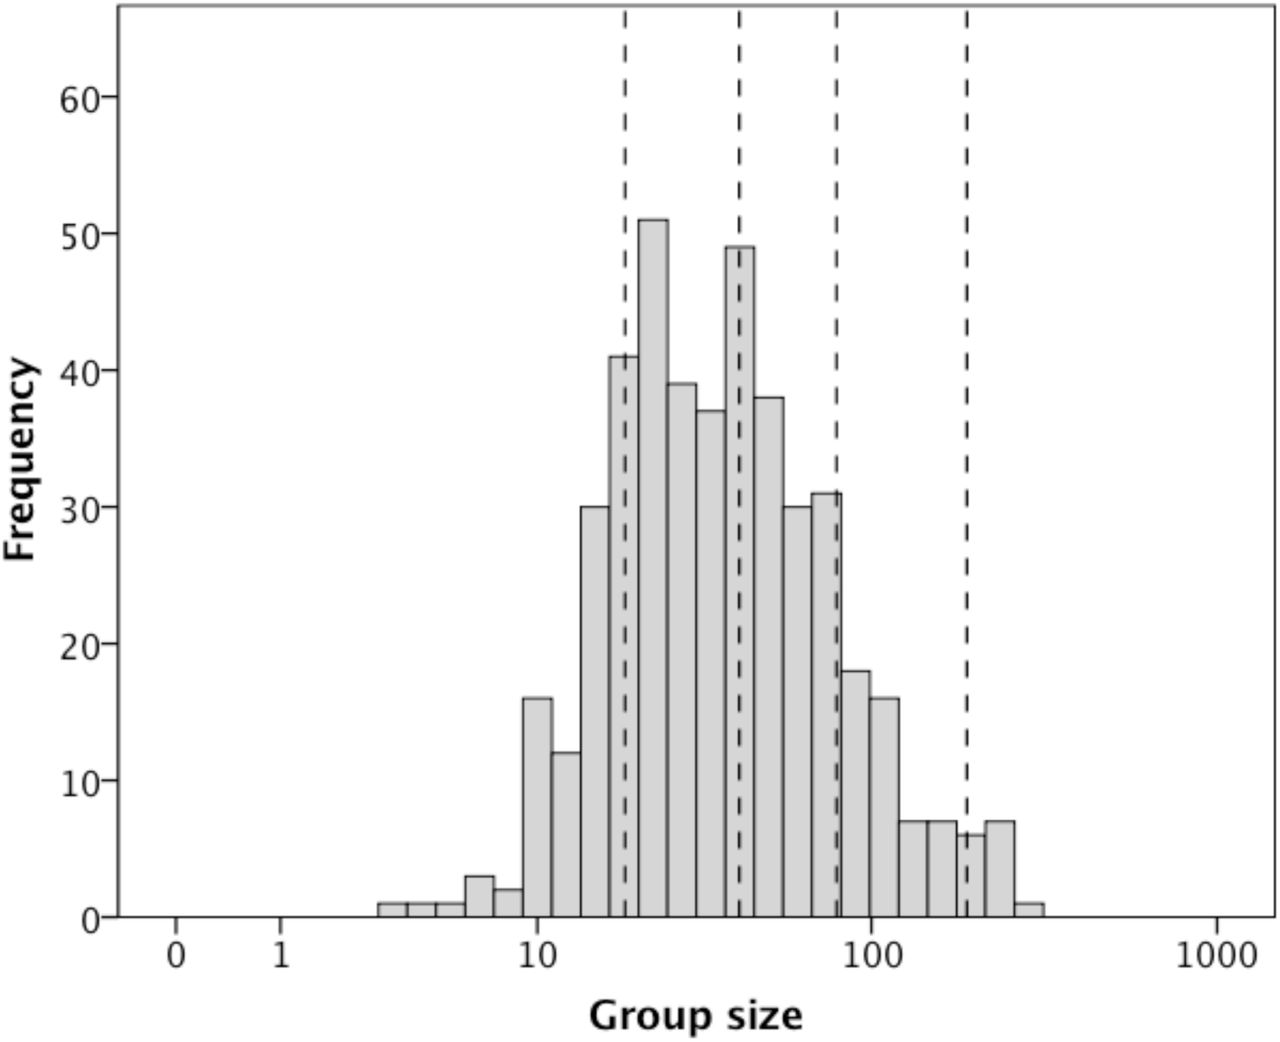 Group Size as a Trade Off Between Fertility and Predation